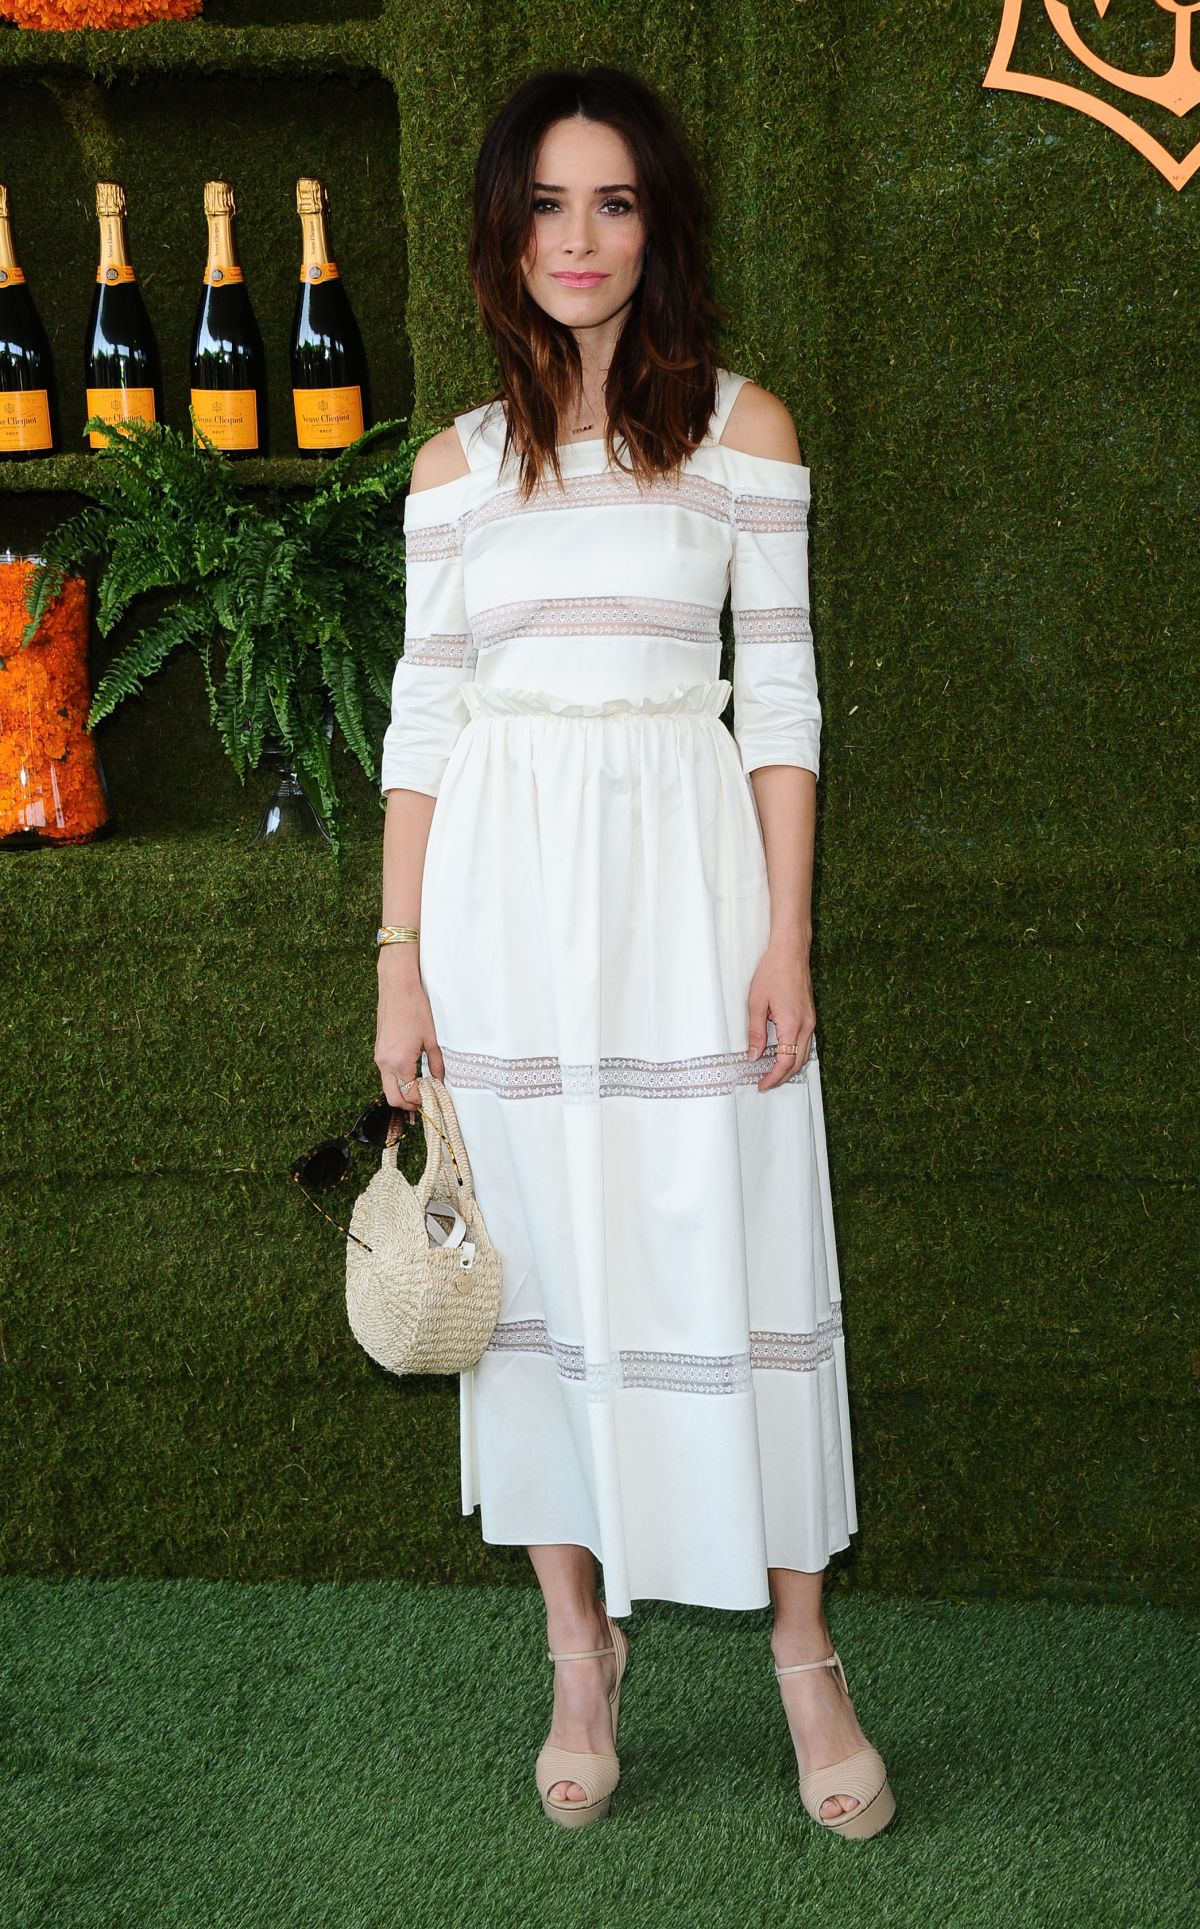 62074317_abigail-spencer-at-veuve-cliquot-polo-classic-in-la-24.jpg